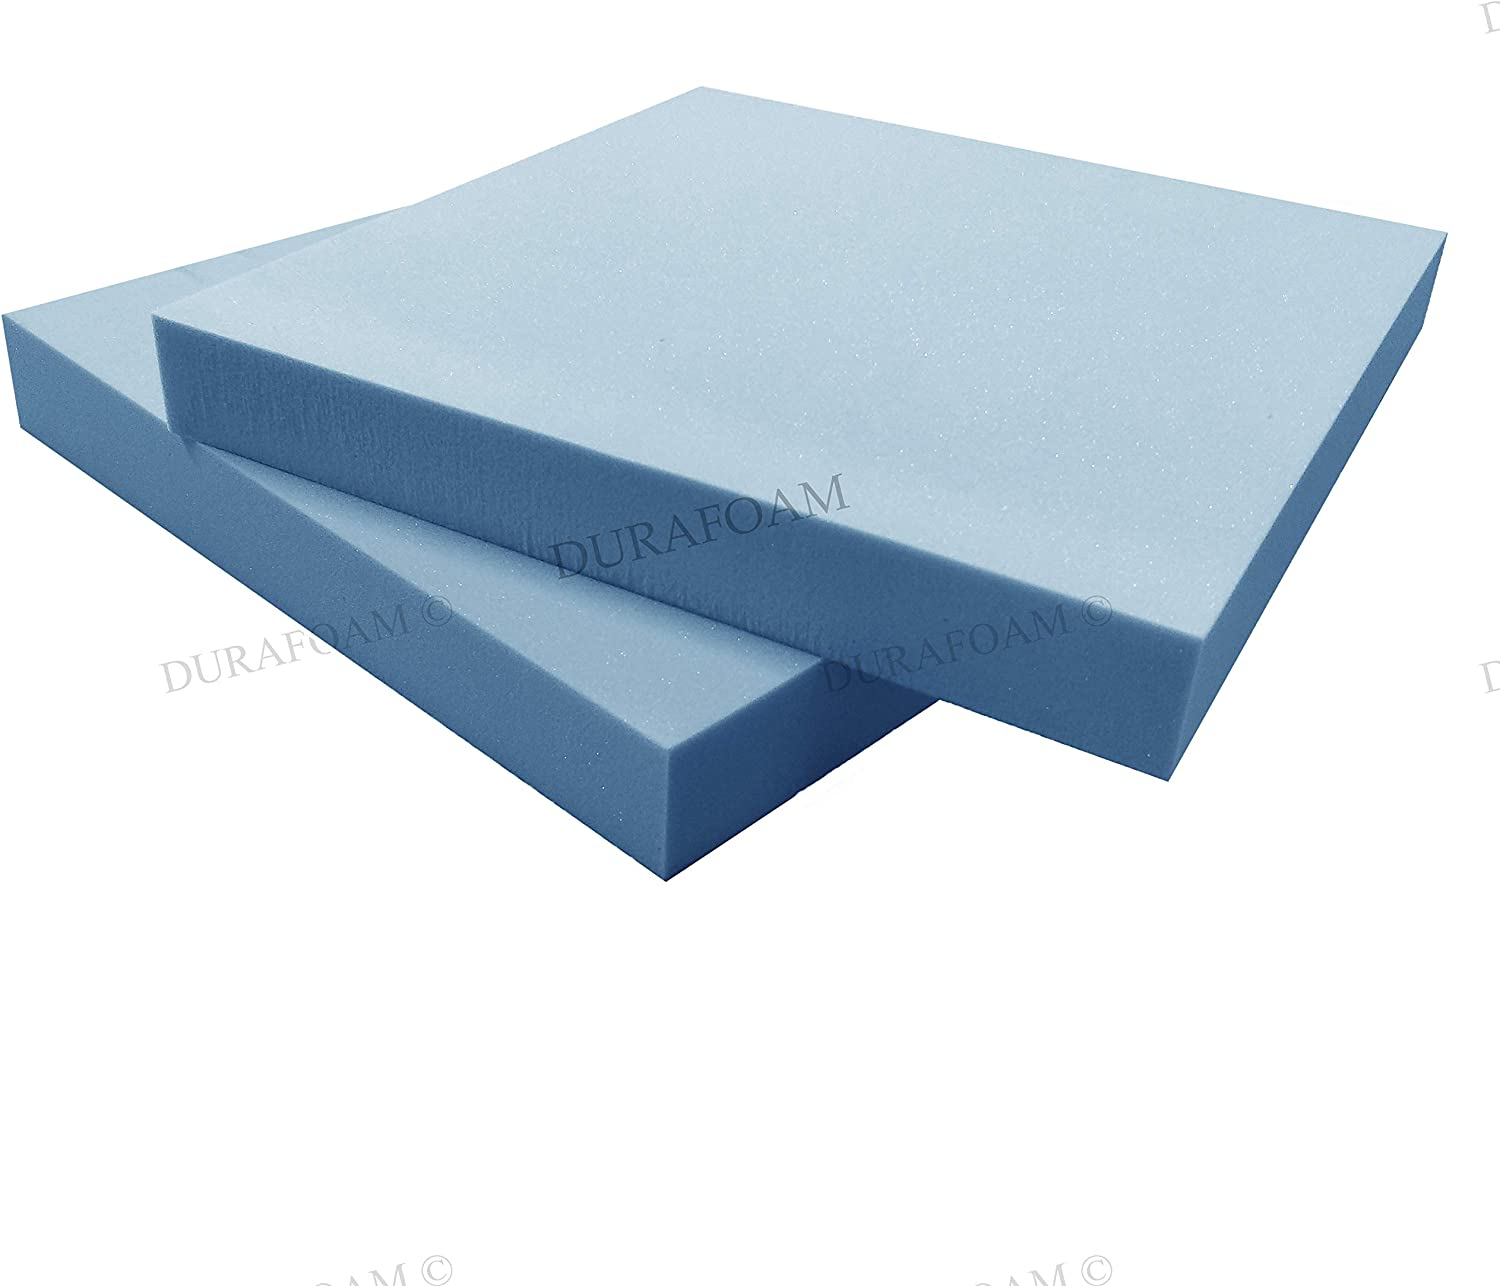 Chair Bluemoon Bedding High Density Upholstery Foam 24 x 24, Upholstery Foam Thickness 1 Seat Cushions Cut to Any size seat pad Seating firm Foam Dinning Stool